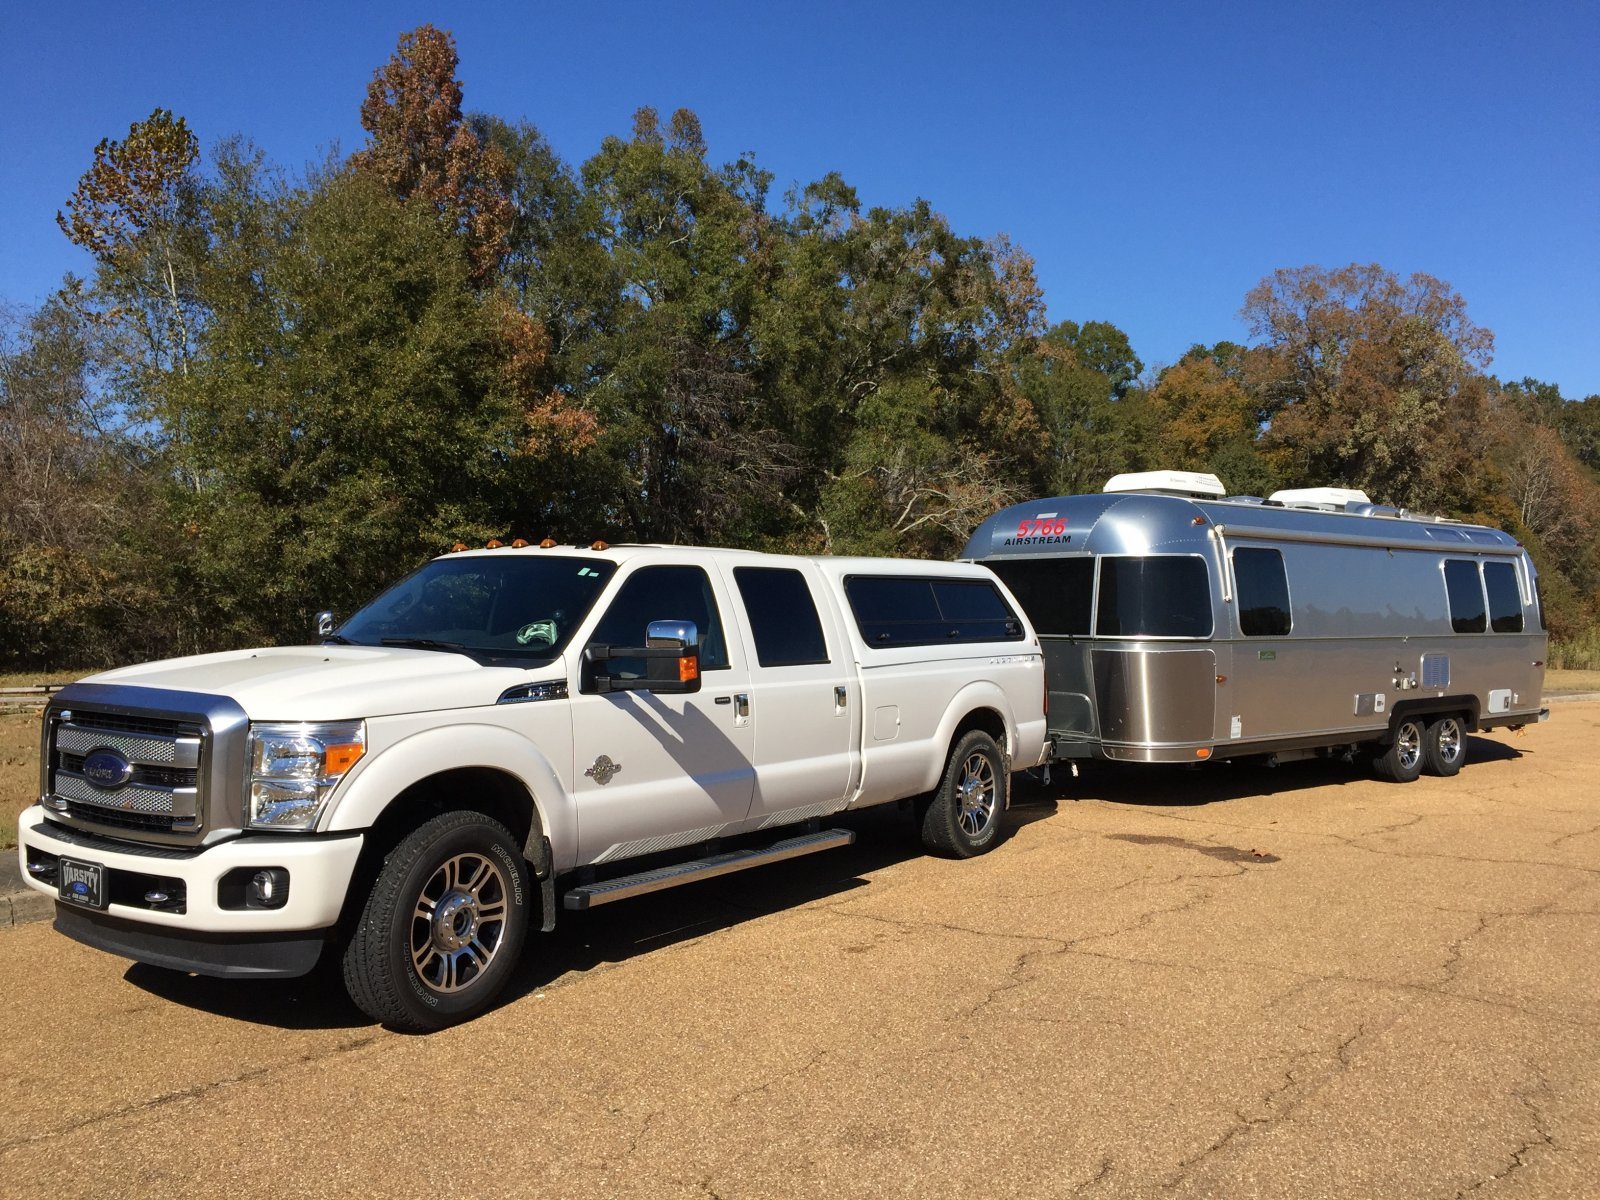 Click image for larger version  Name:F-250.jpg Views:79 Size:488.8 KB ID:237158